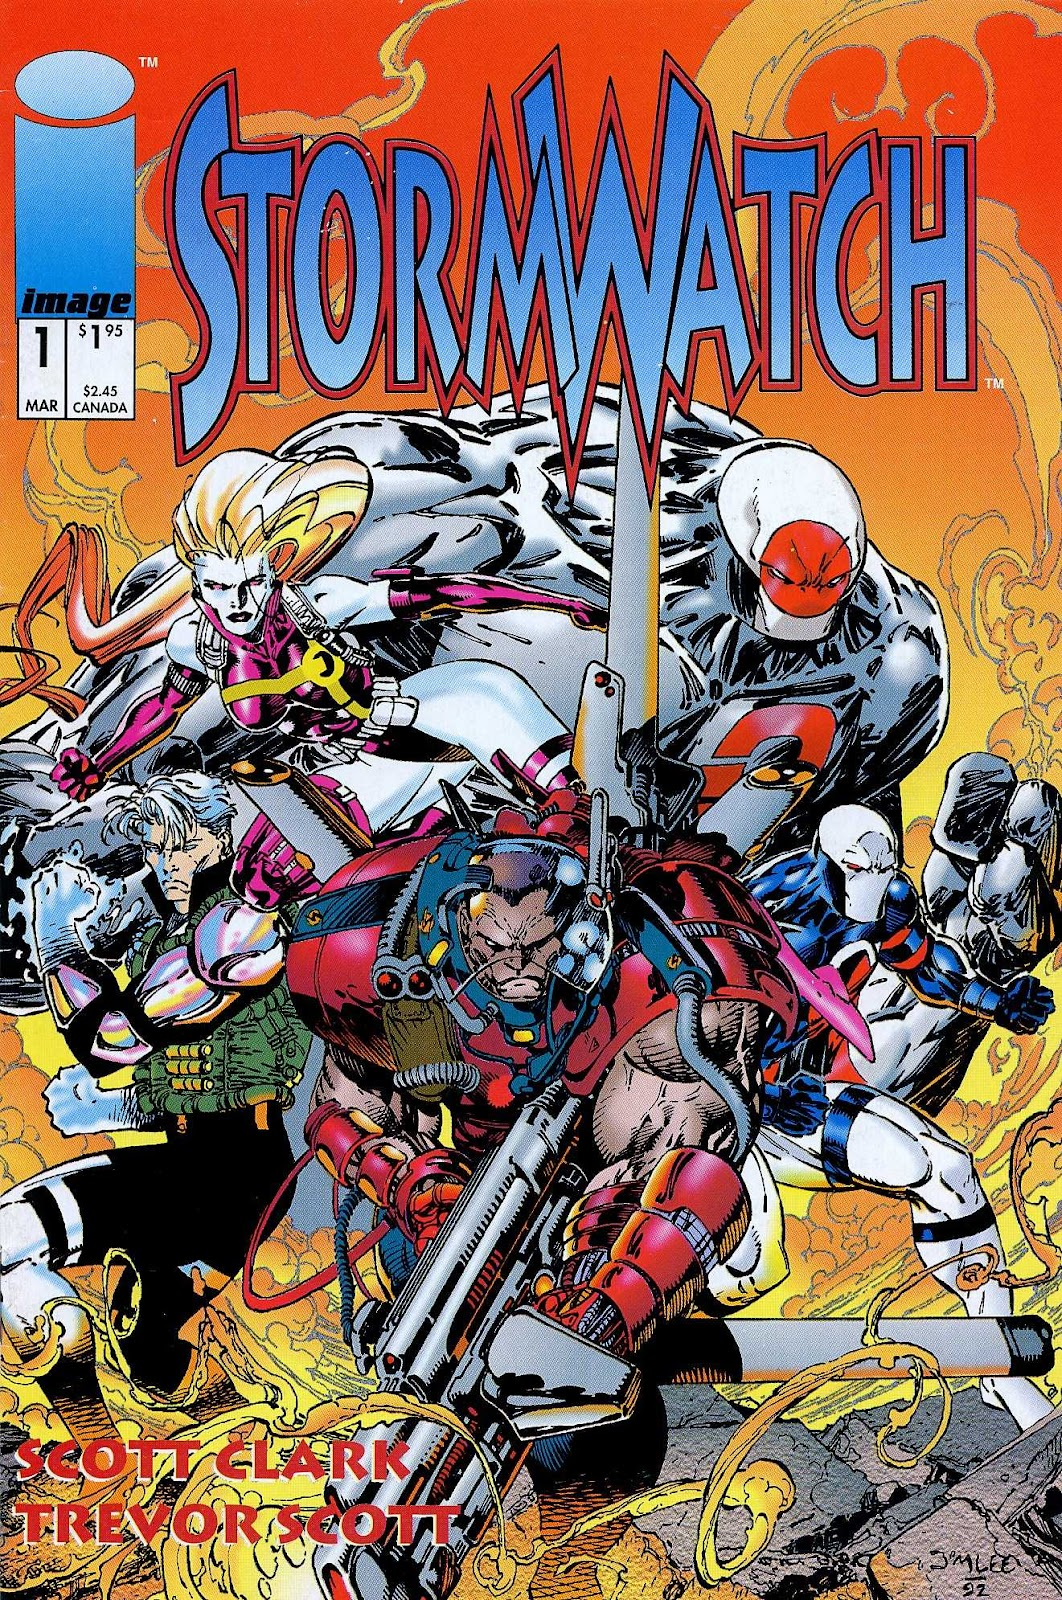 Stormwatch (1993) issue 1 - Page 1